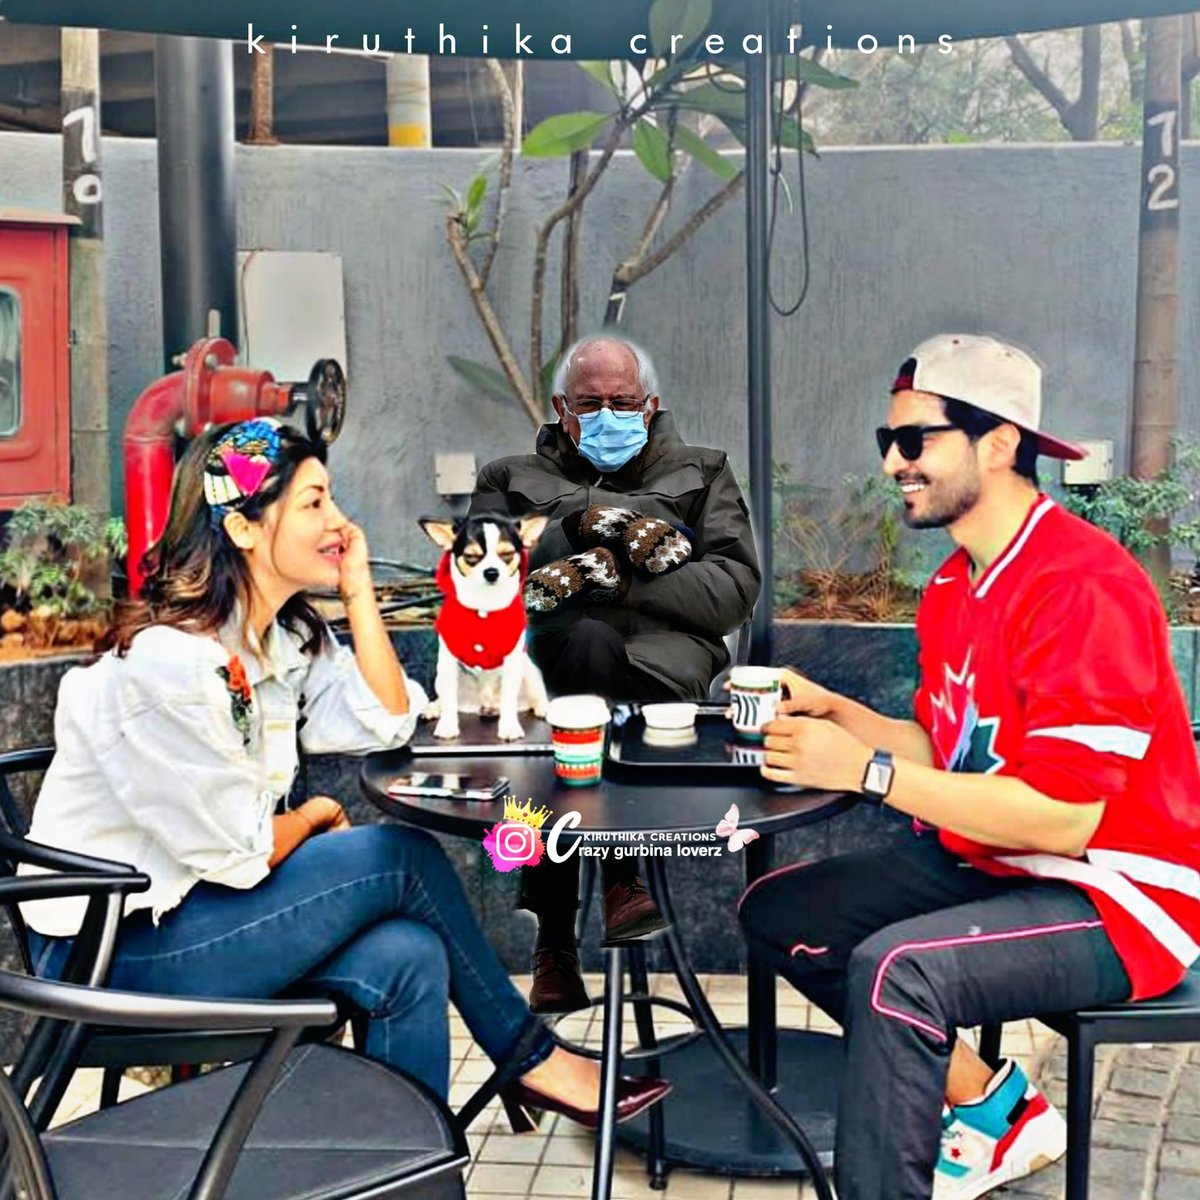 So simply going with the trend why to miss it !! My Power couple having coffee with #BernieSanders ❤️😍 @gurruchoudhary @imdebina #Gurmeetchoudhary #Debinabonnerjee #GurBina https://t.co/whQA09TgR6